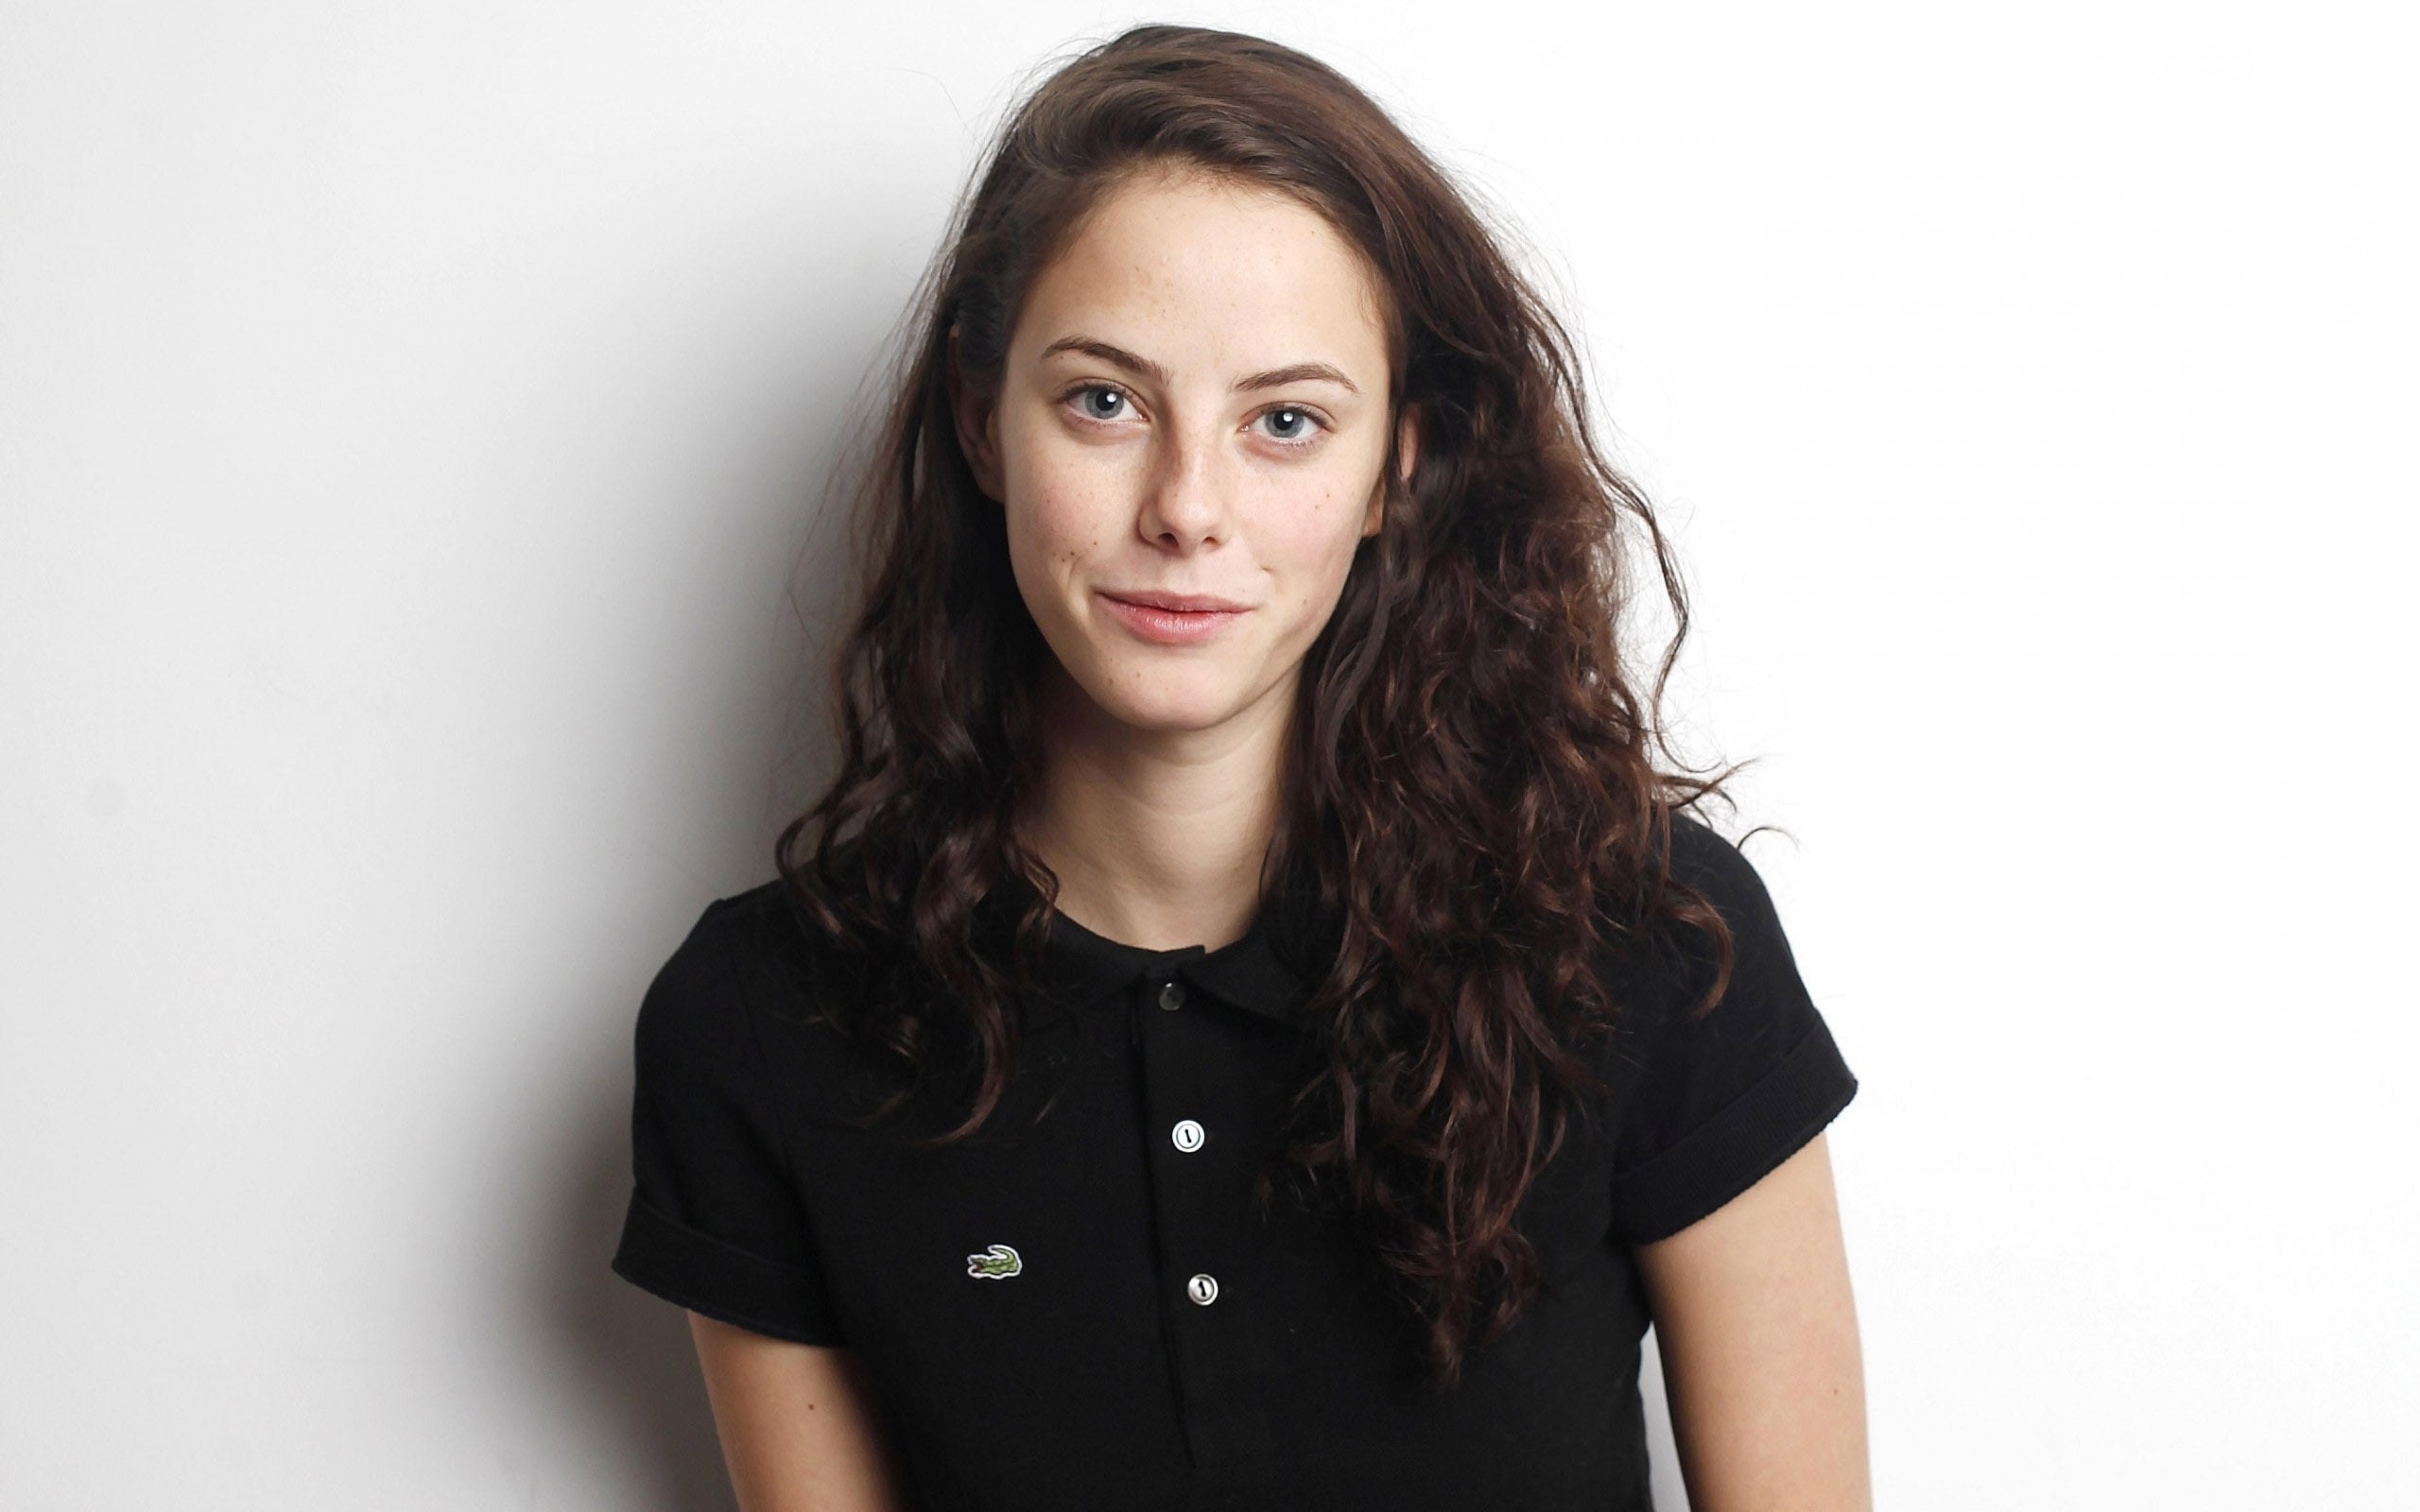 Kaya Scodelario widescreen wallpapers